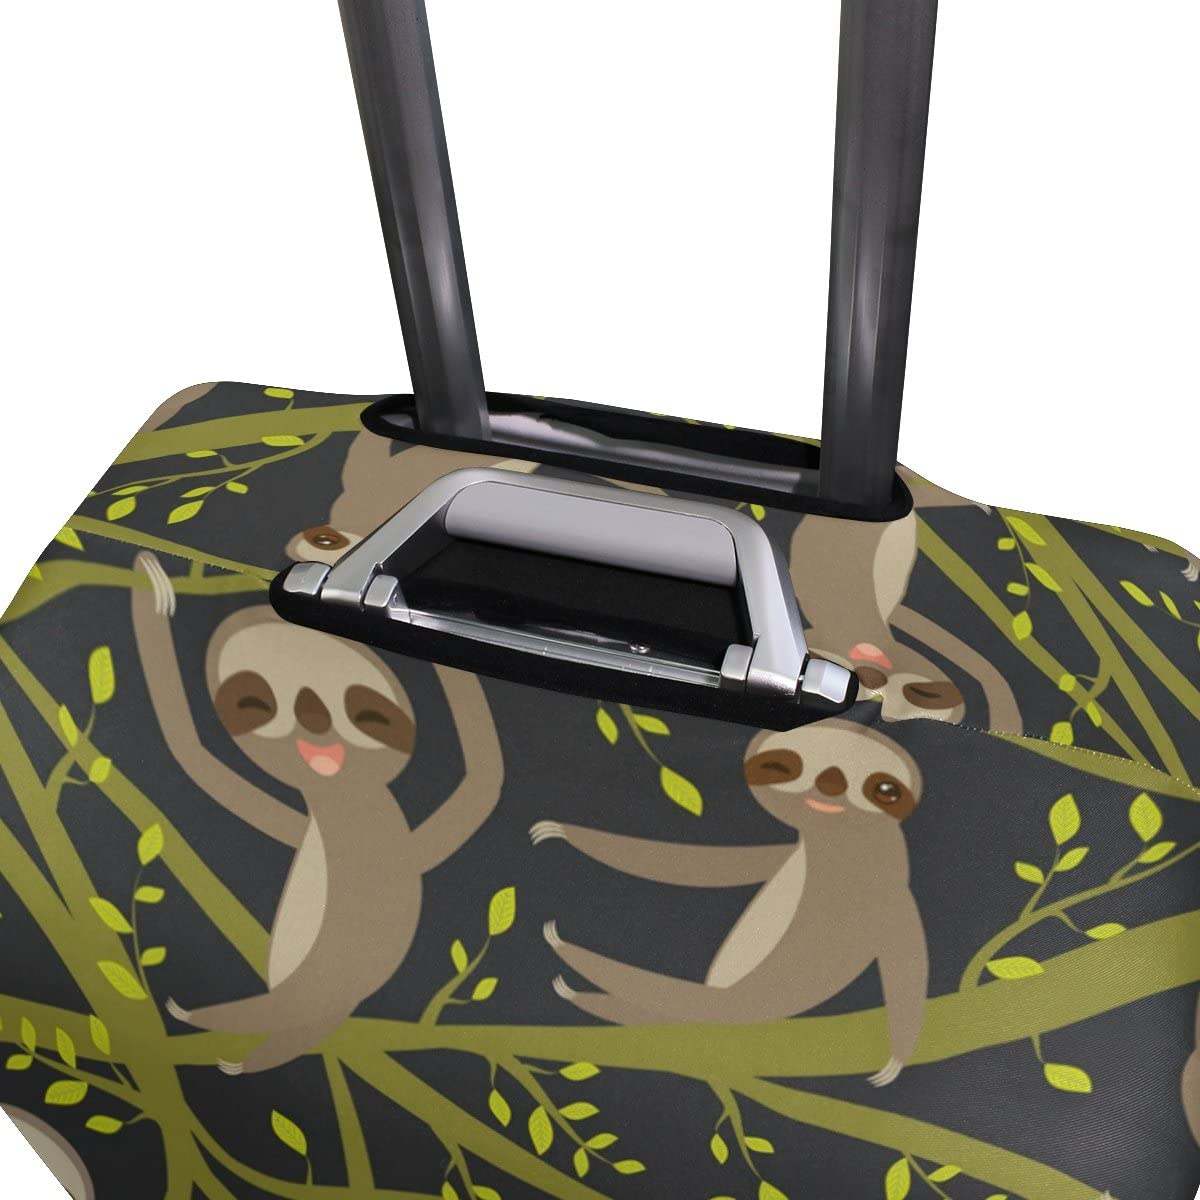 OREZI Luggage Protector Cute Smiling Sloth Travel Luggage Elastic Cover Suitcase Washable and Durable Anti-Scratch Stretchy Case Cover Fits 18-32 Inches